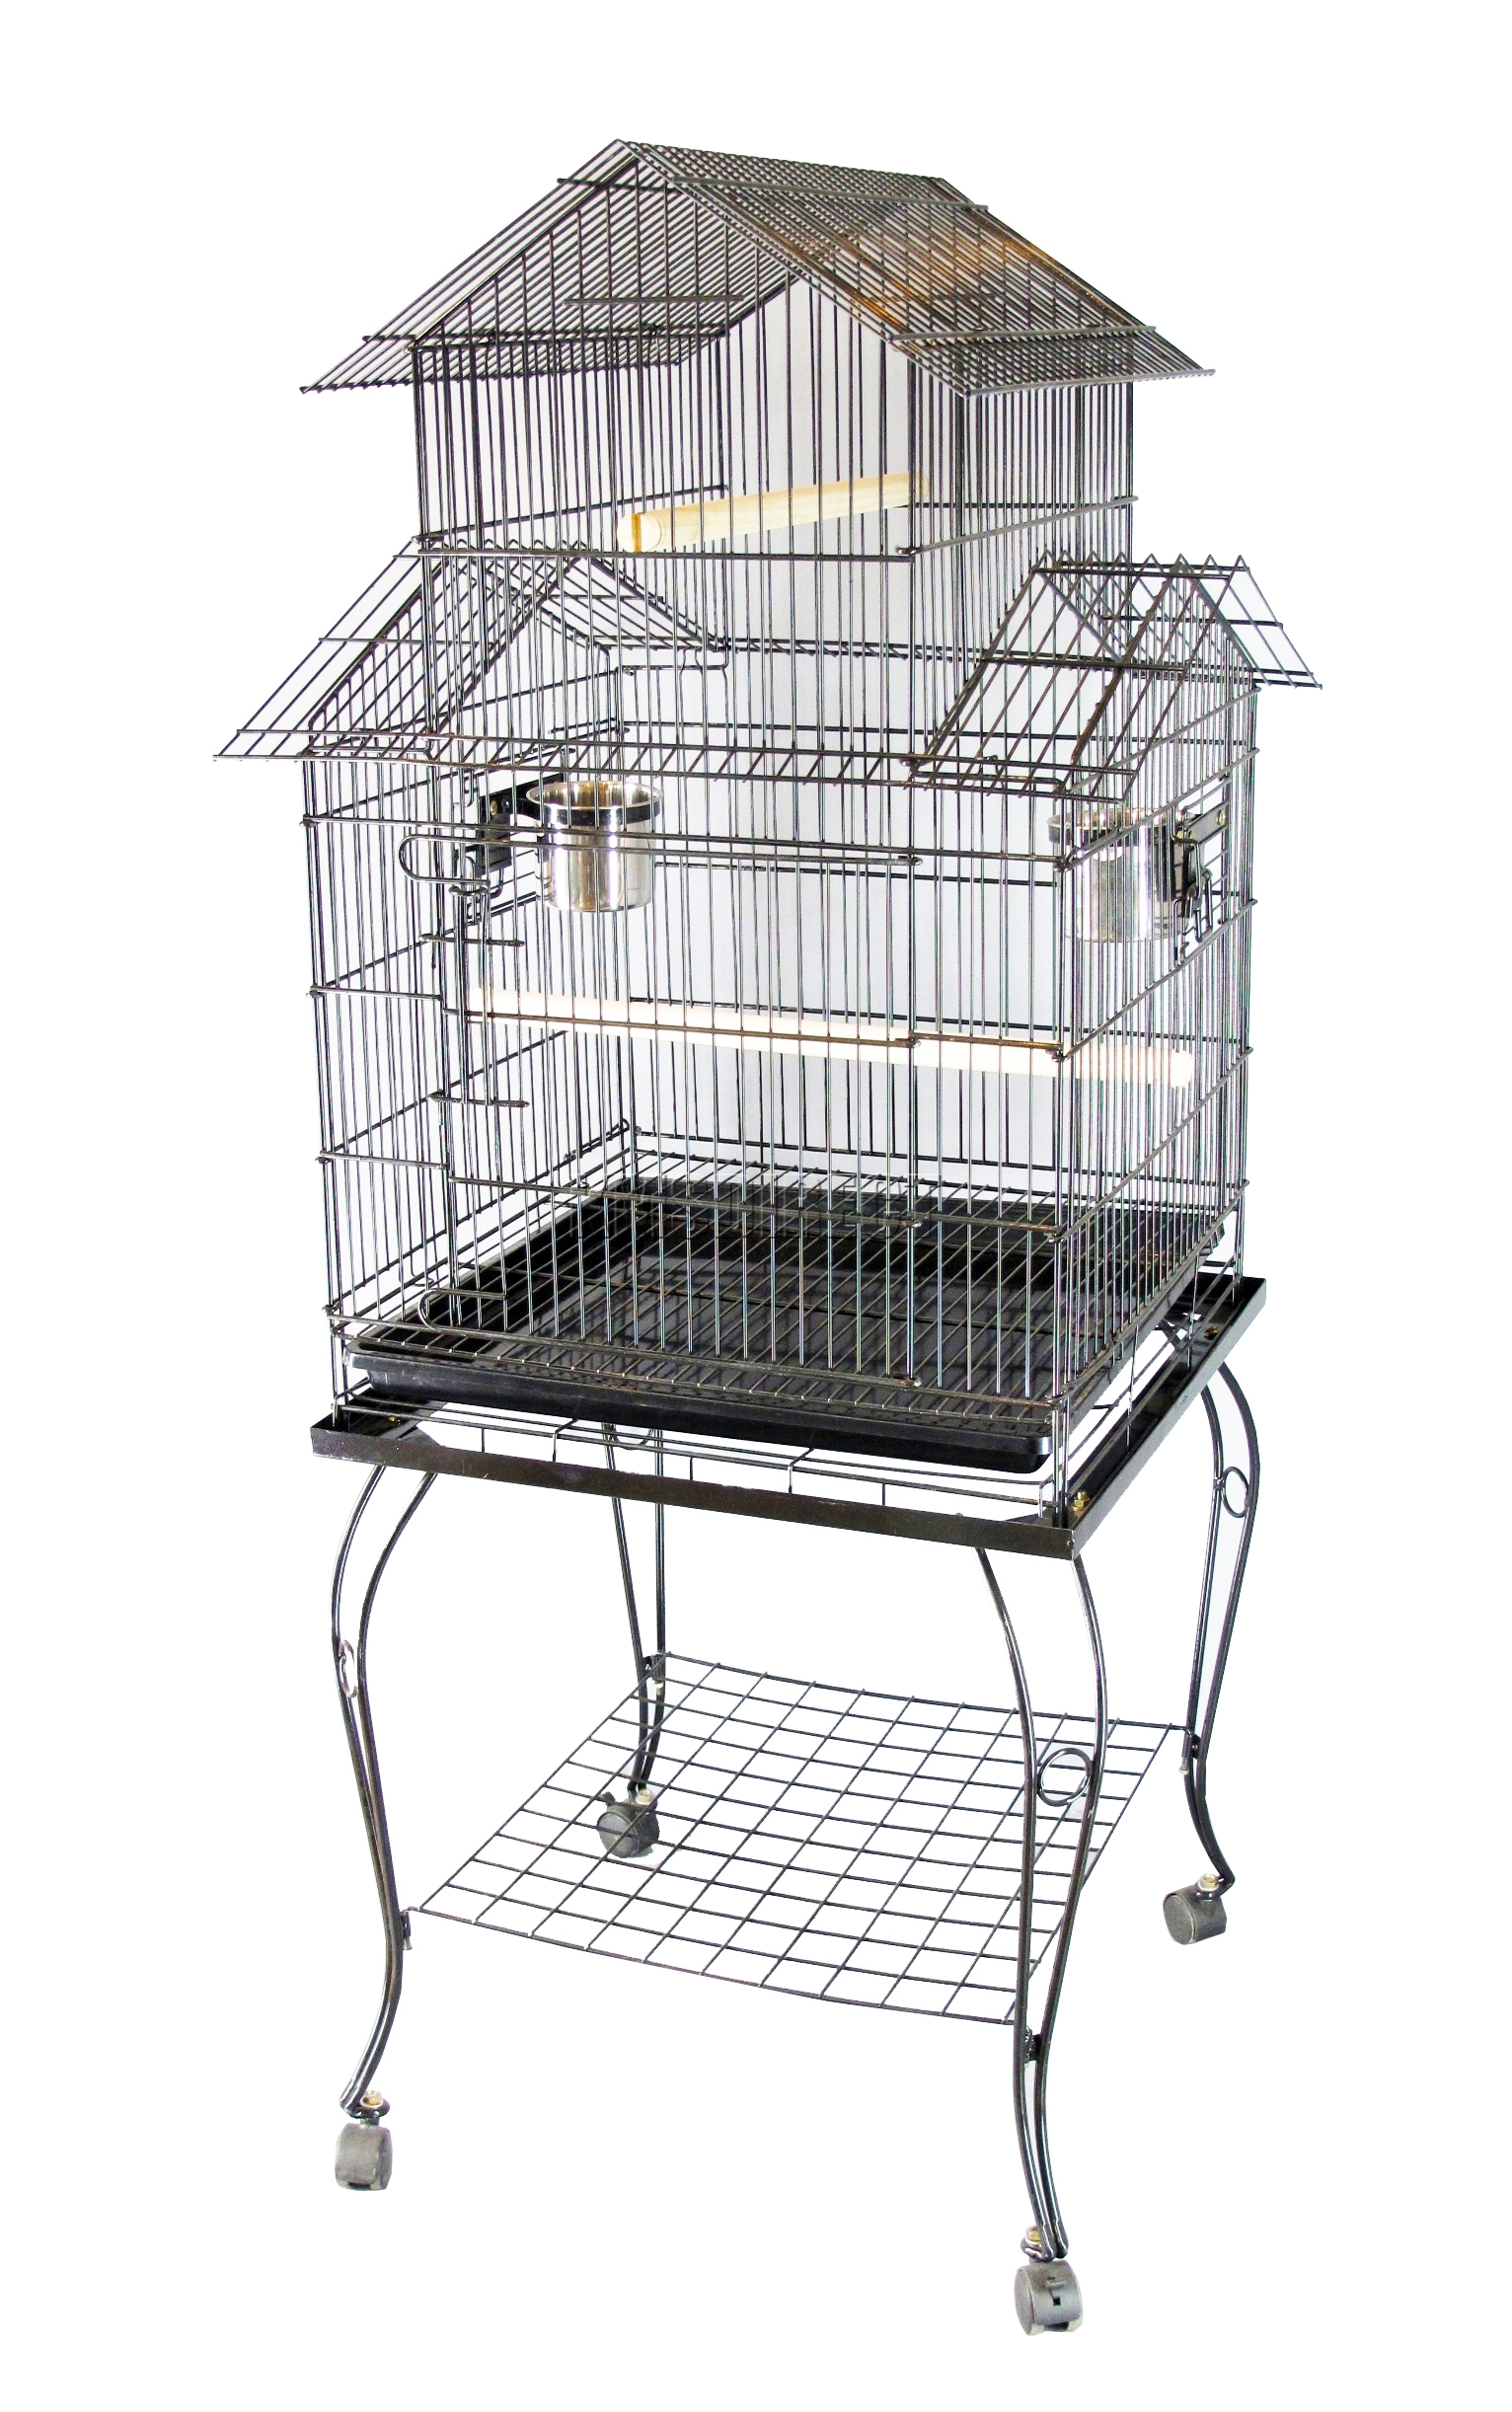 foxhunter large metal bird cage stand aviary parrot budgie canary cockatiel 02 ebay. Black Bedroom Furniture Sets. Home Design Ideas